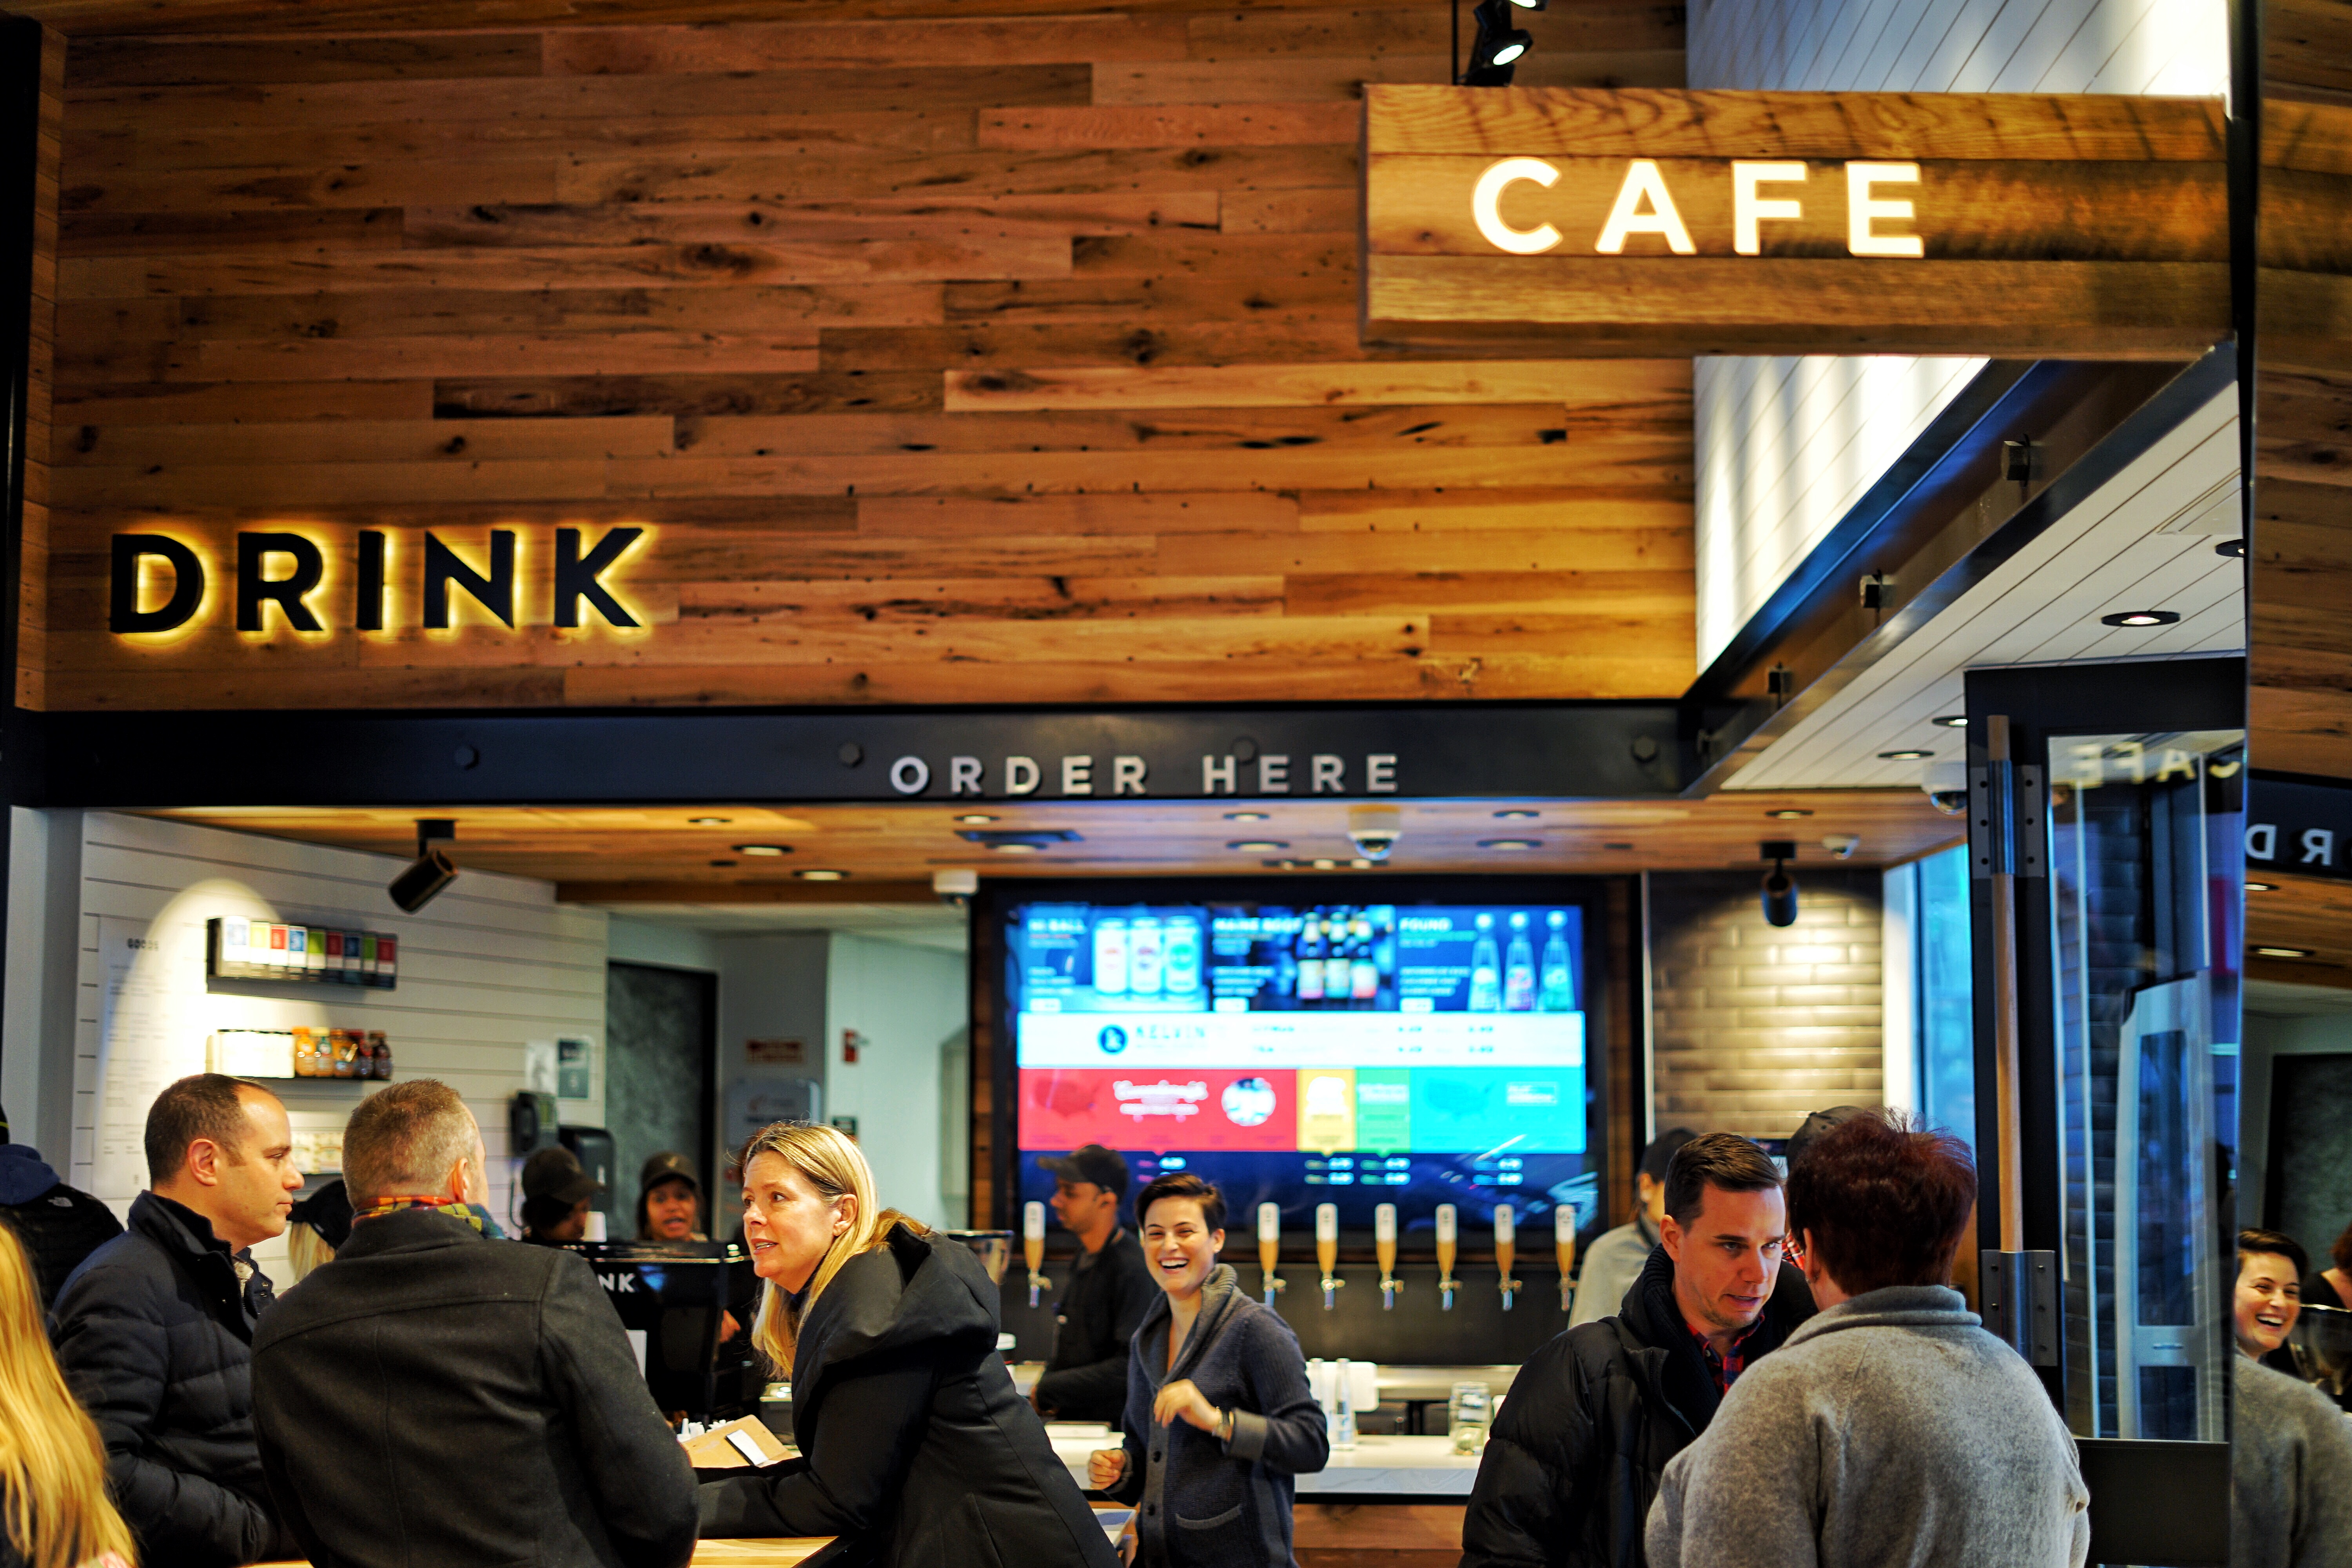 People stand around at American Eagle's Drink cafe in New York City.